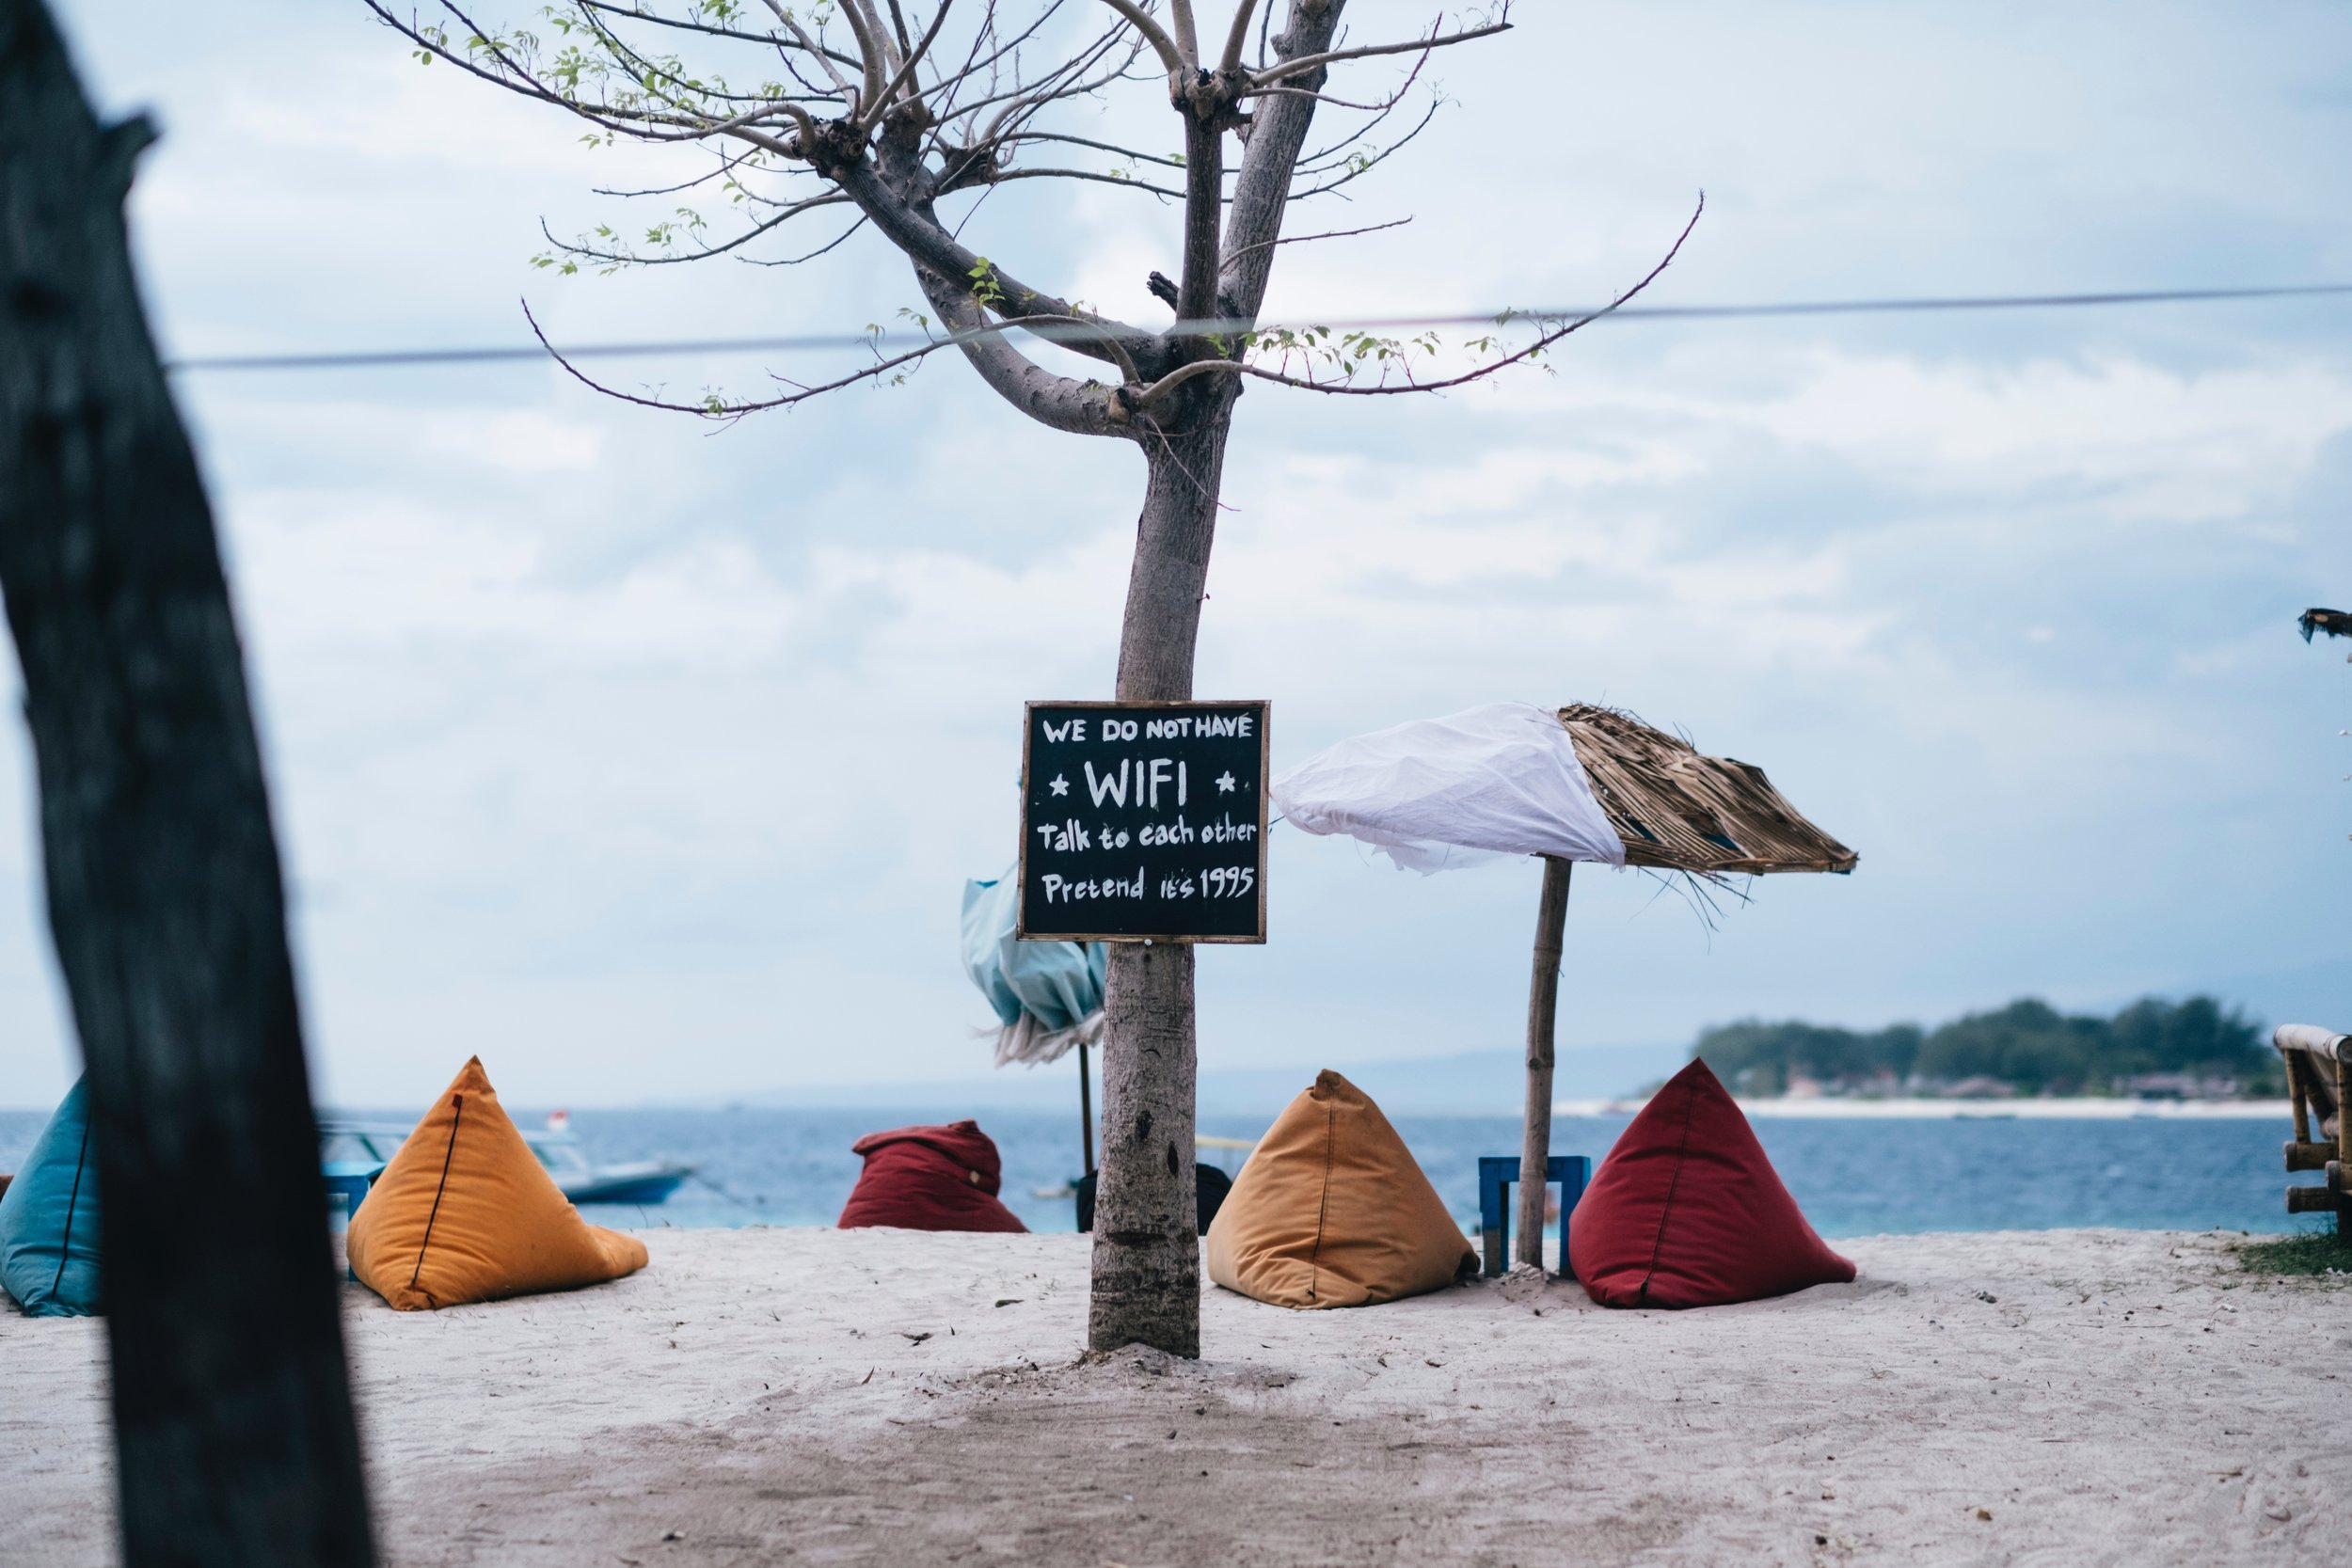 Beanbag chairs on the beach = cool. Hipster WiFi signs = lame.